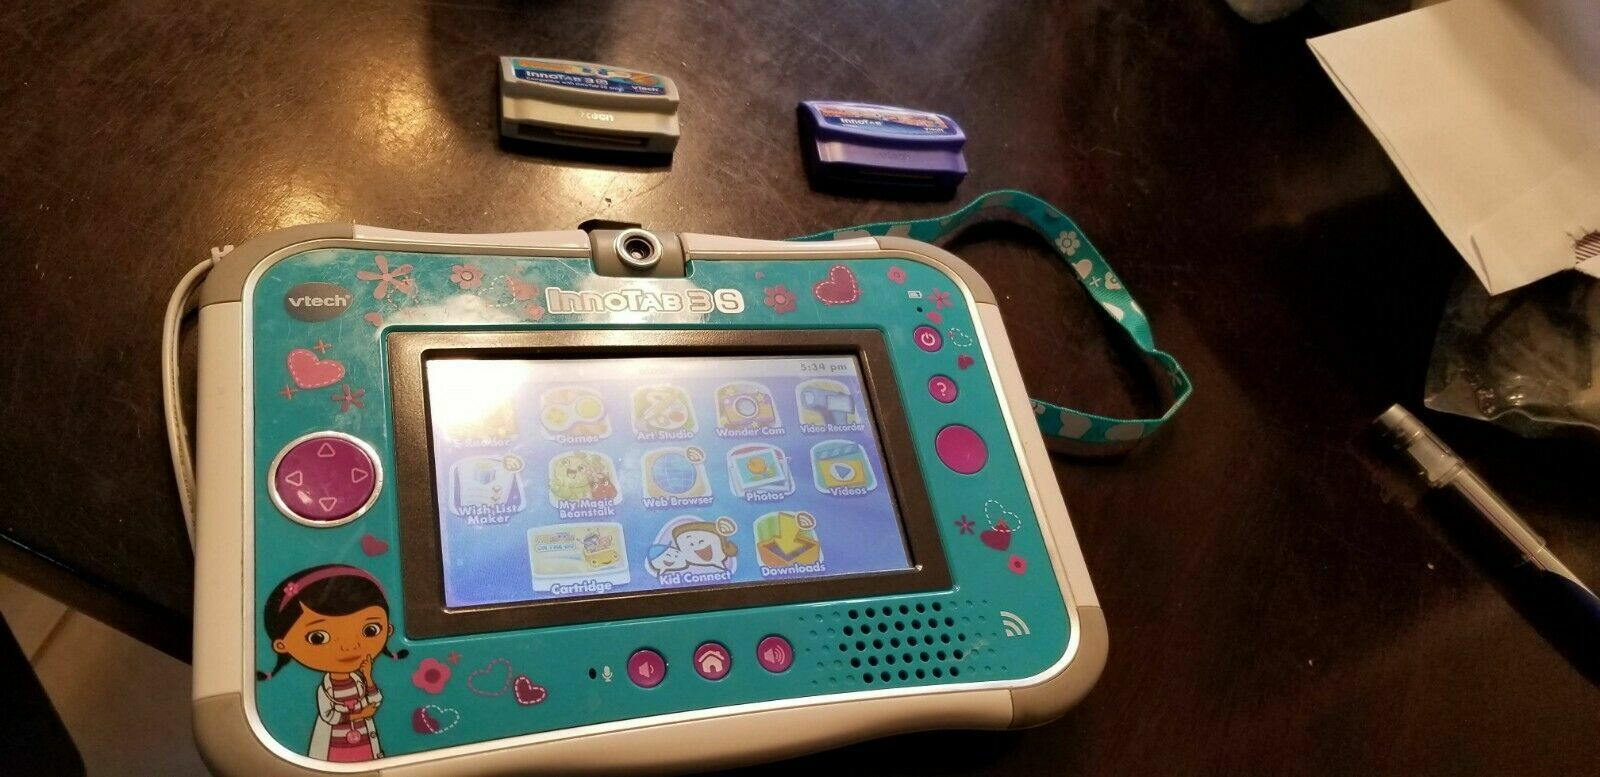 Vtech Innotab 3S Kid's Learning Tablet with Wi-Fi, & MUCH MORE  MODEL 1588